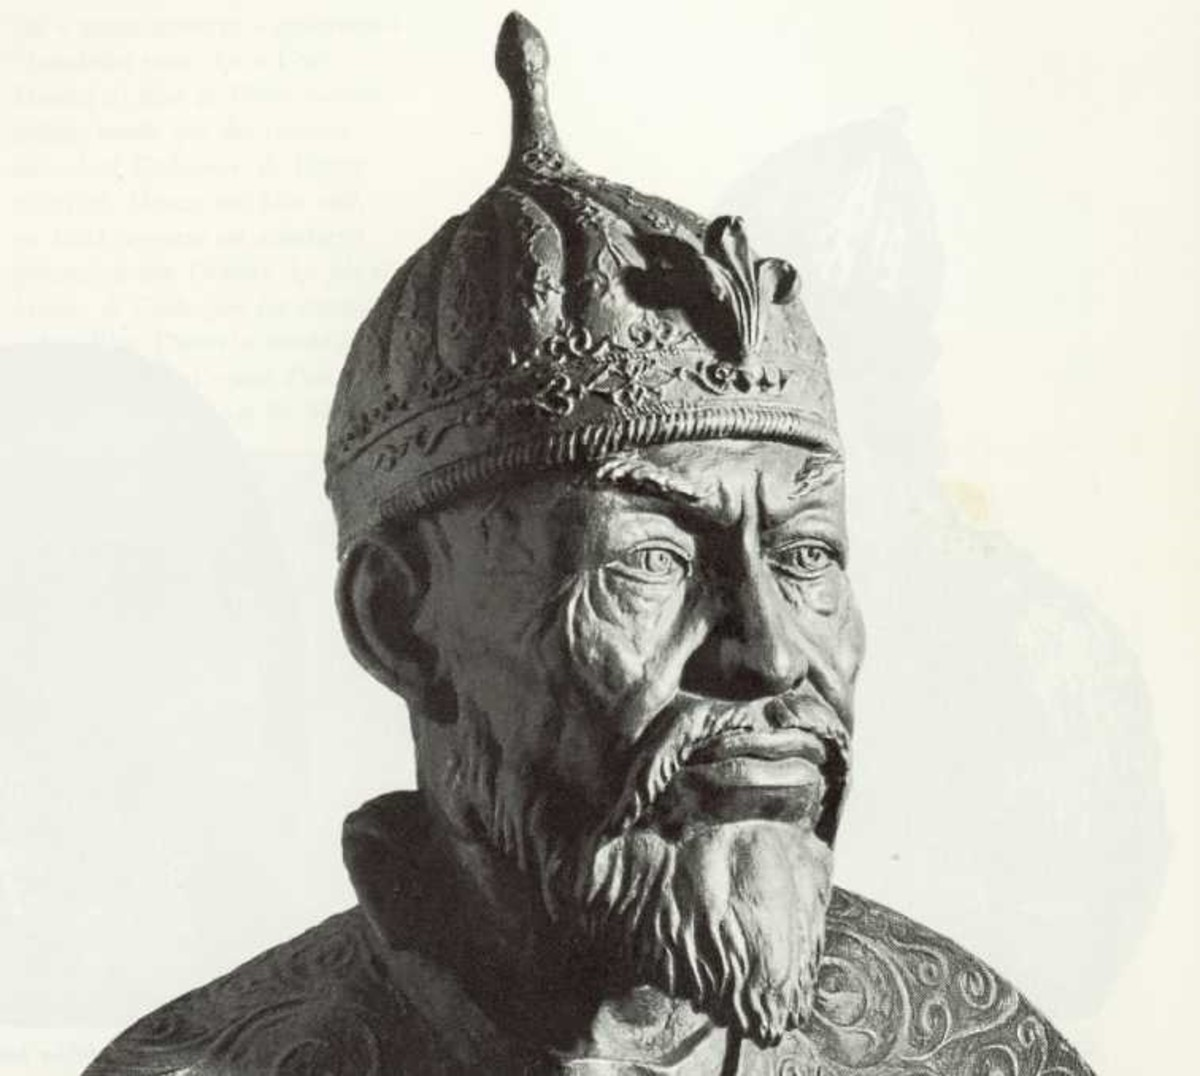 40 Facts About Tamerlane: Timur the Lame